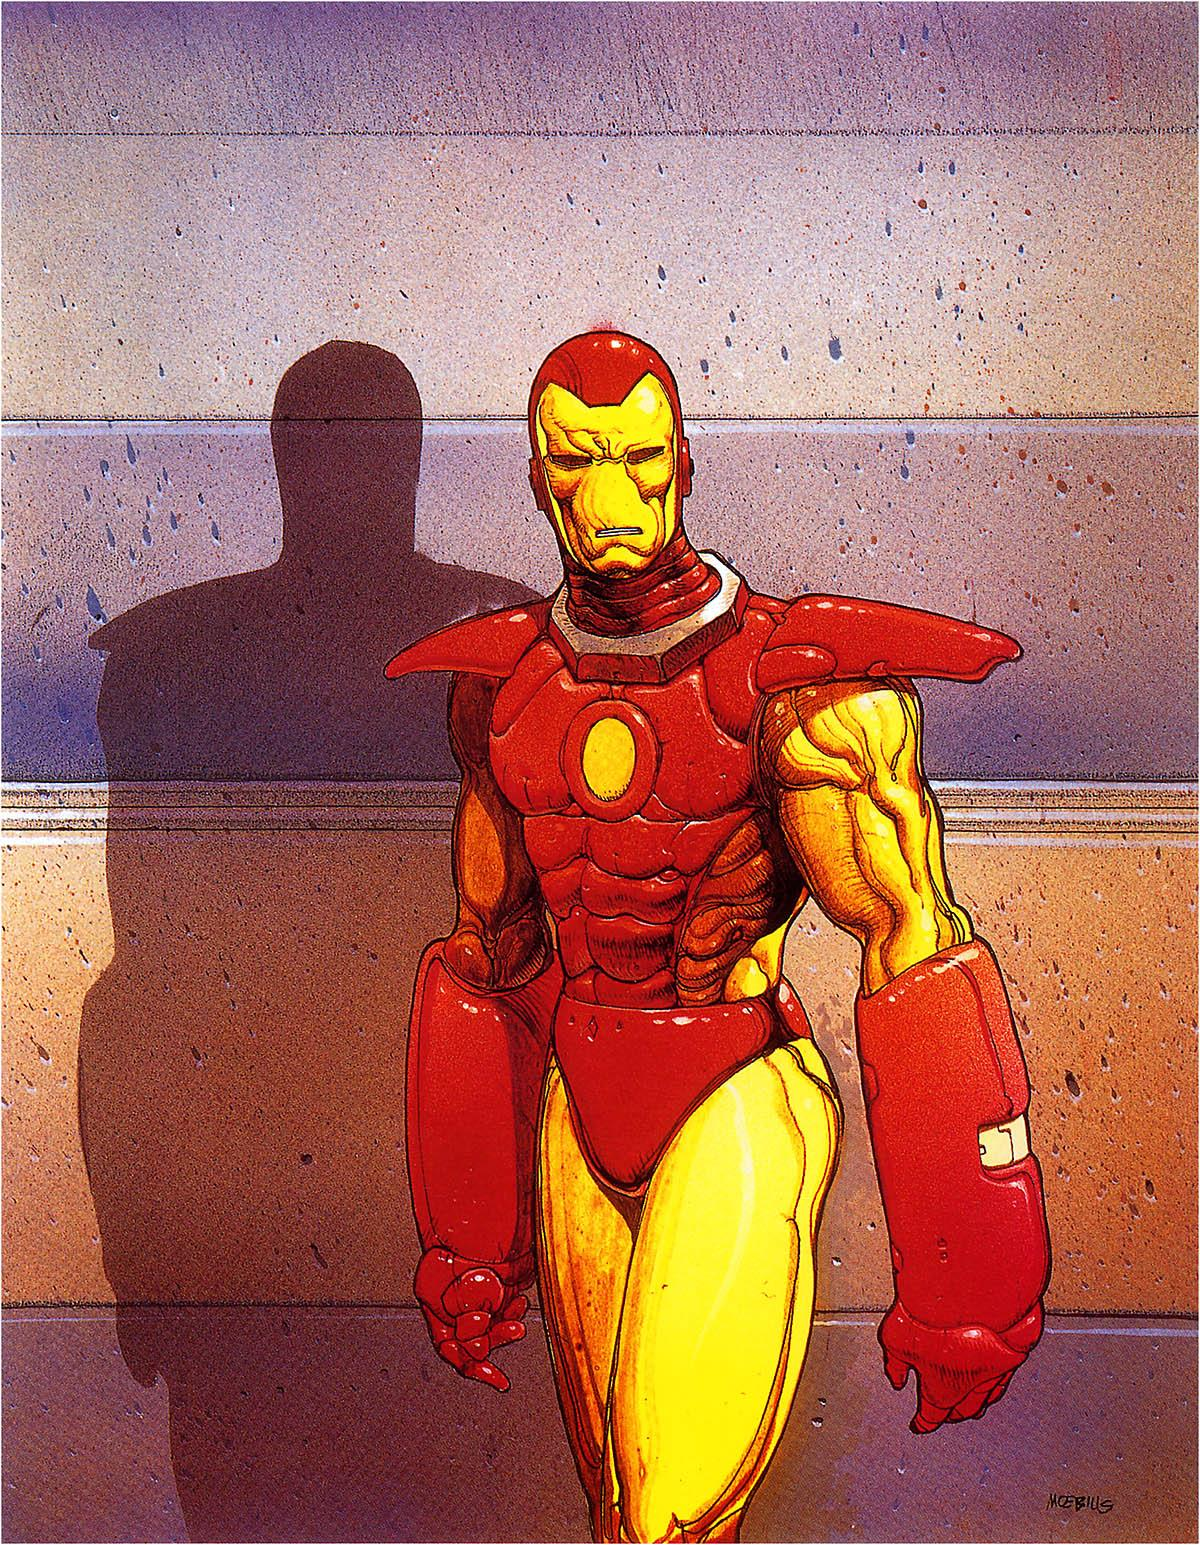 Iron Man by Moebius